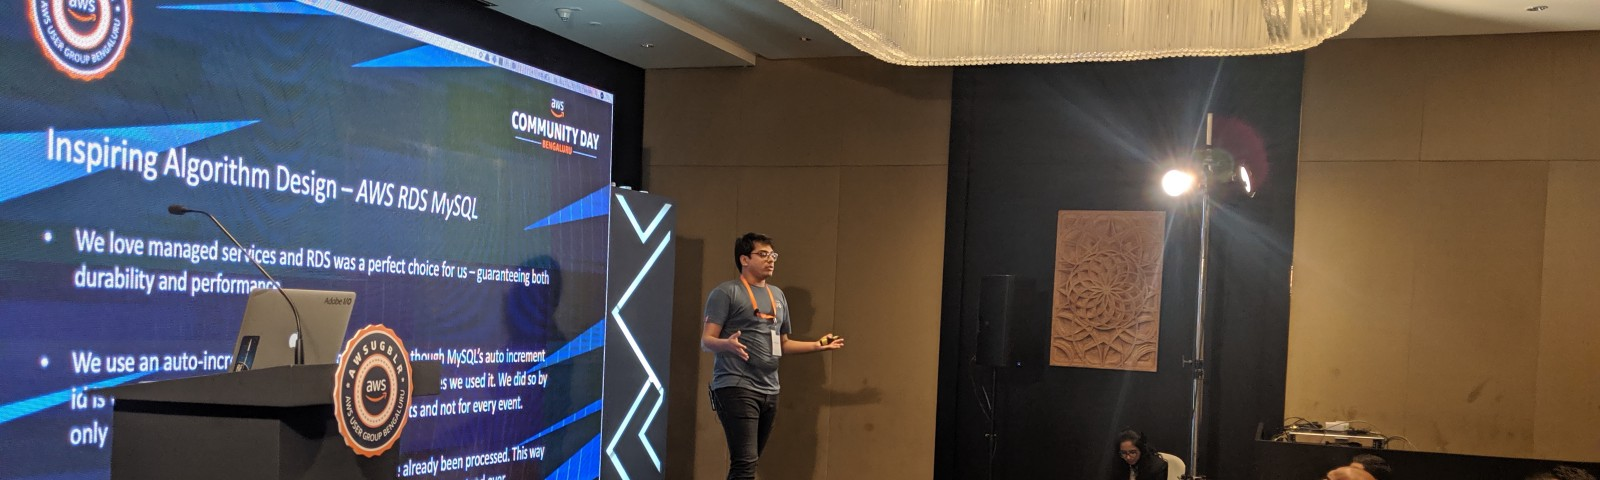 Presenting our learnings at AWS Community Day, Bangalore, 2019.